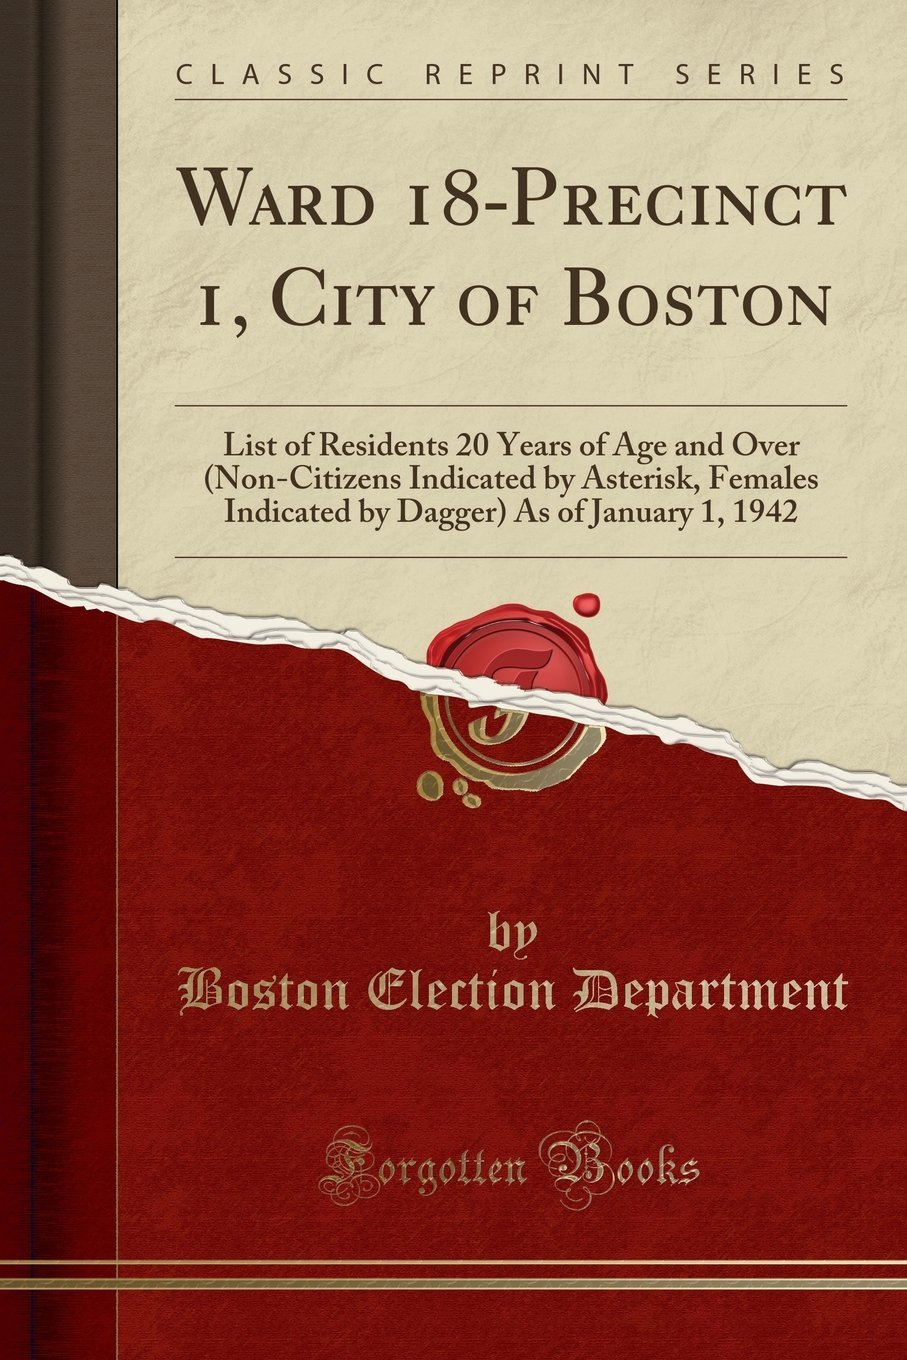 Read Online Ward 18-Precinct 1, City of Boston: List of Residents 20 Years of Age and Over (Non-Citizens Indicated by Asterisk, Females Indicated by Dagger) As of January 1, 1942 (Classic Reprint) ebook